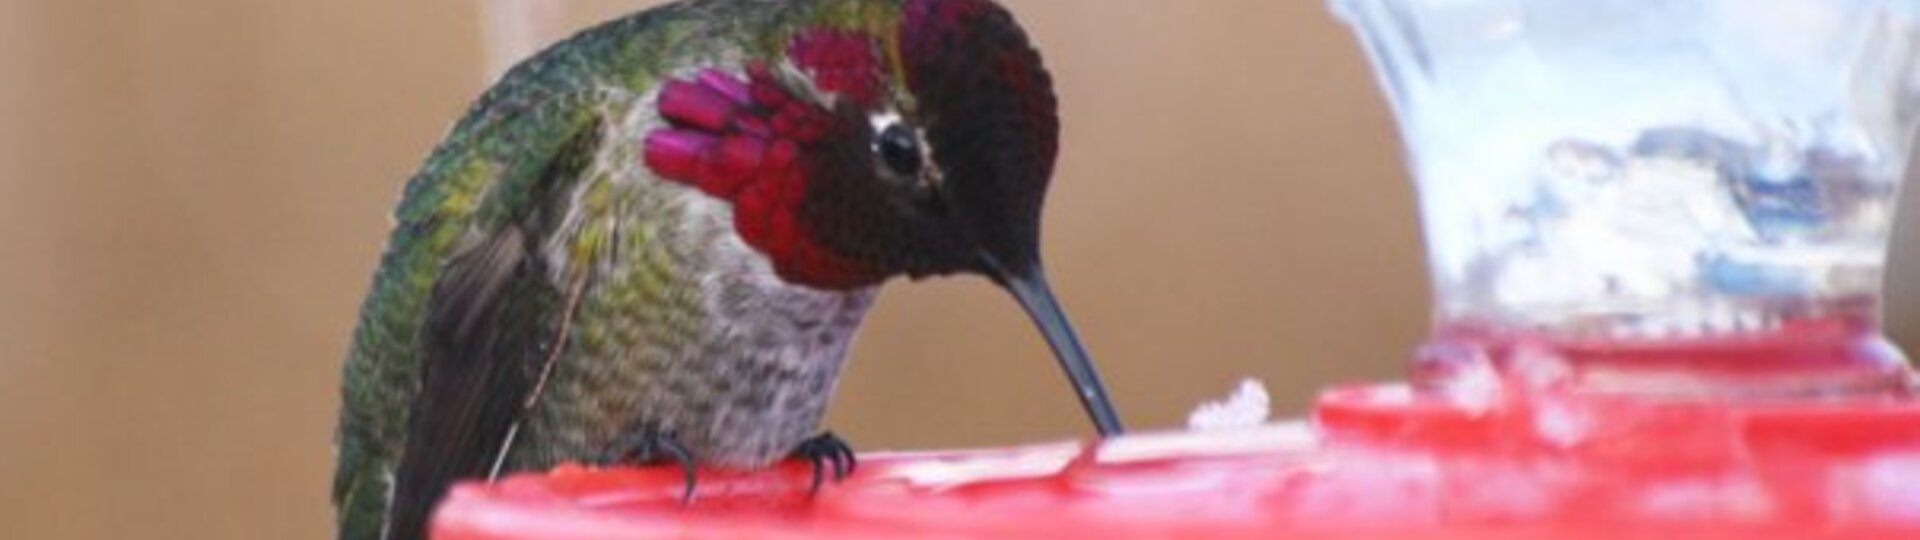 Hummingbird drinking from a feeder